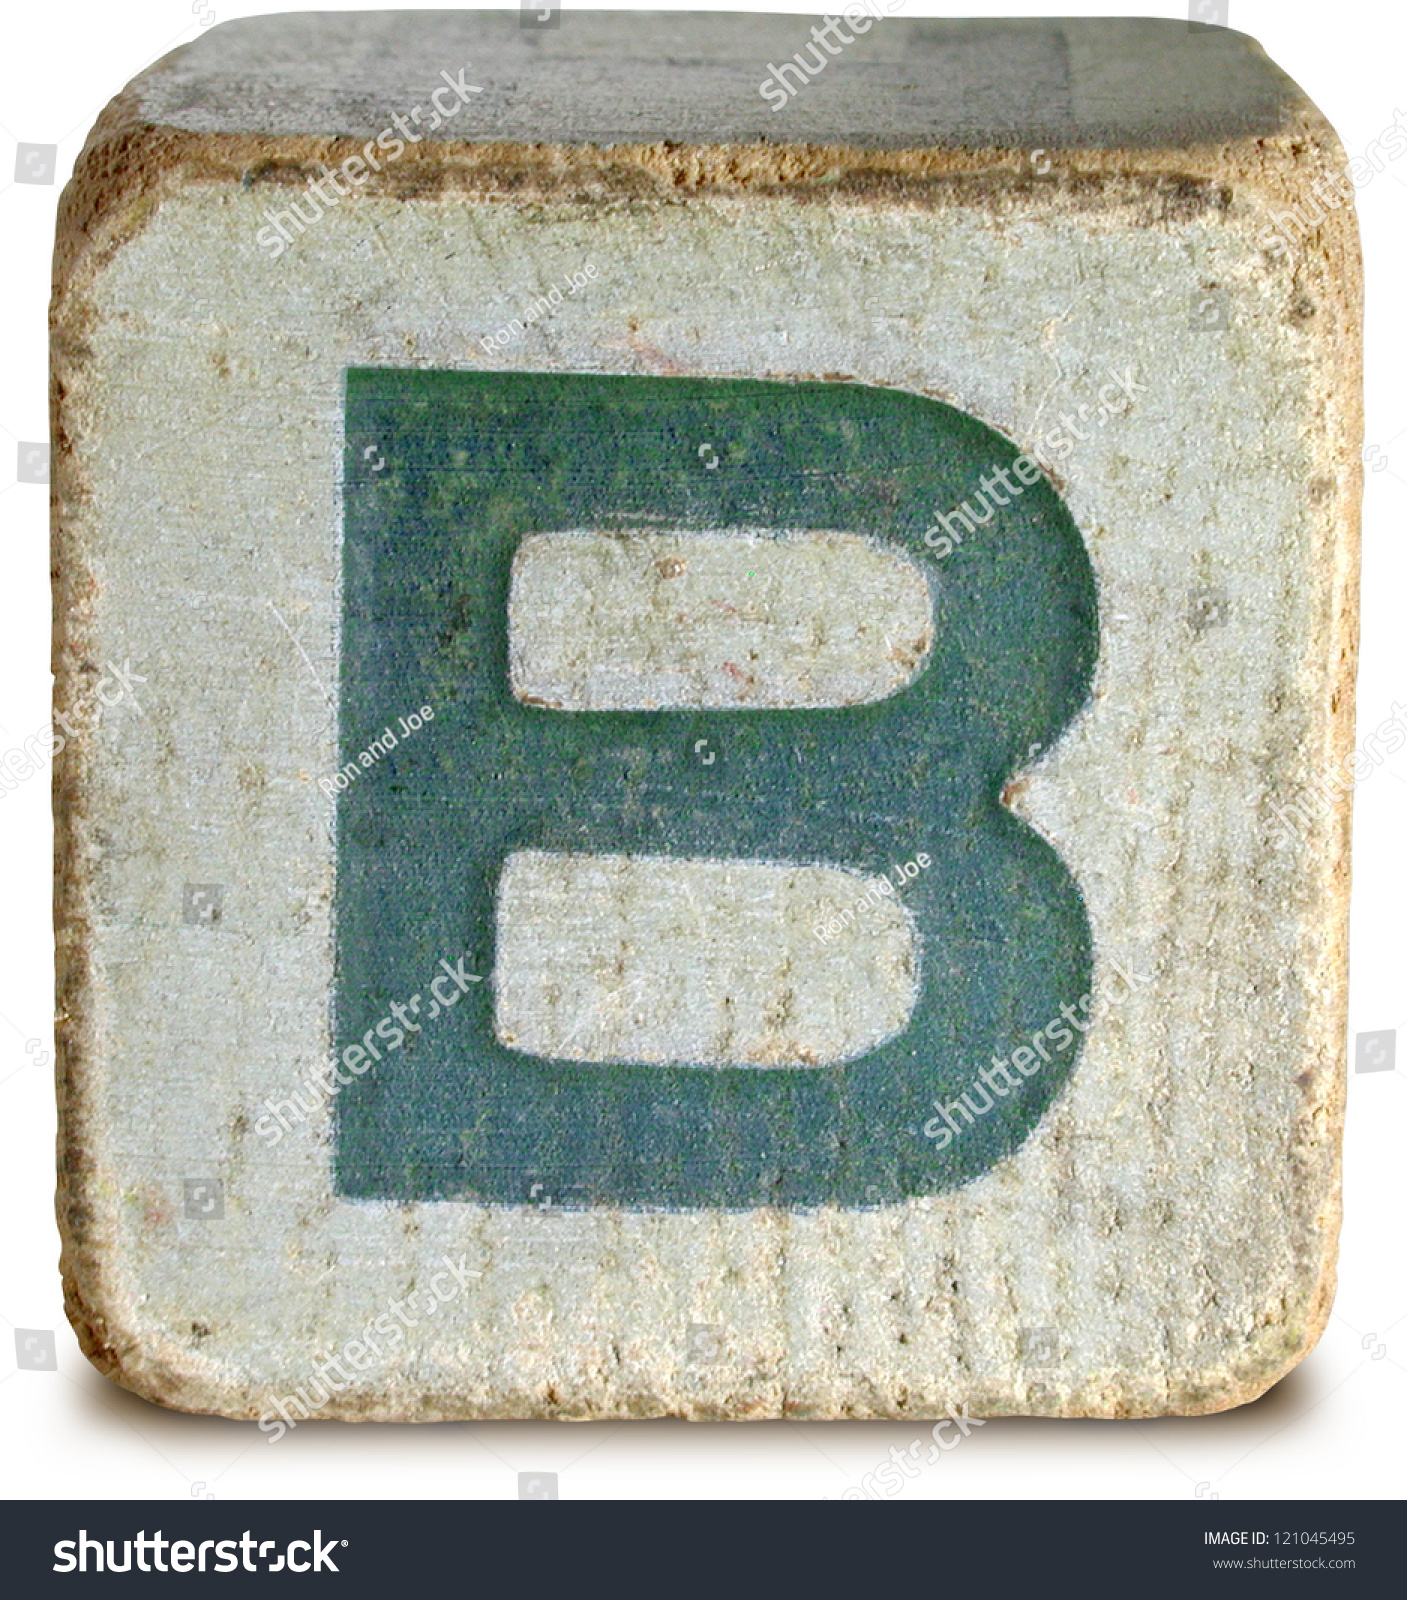 Royalty-free Photograph of Wooden Block Letter B #121045495 Stock